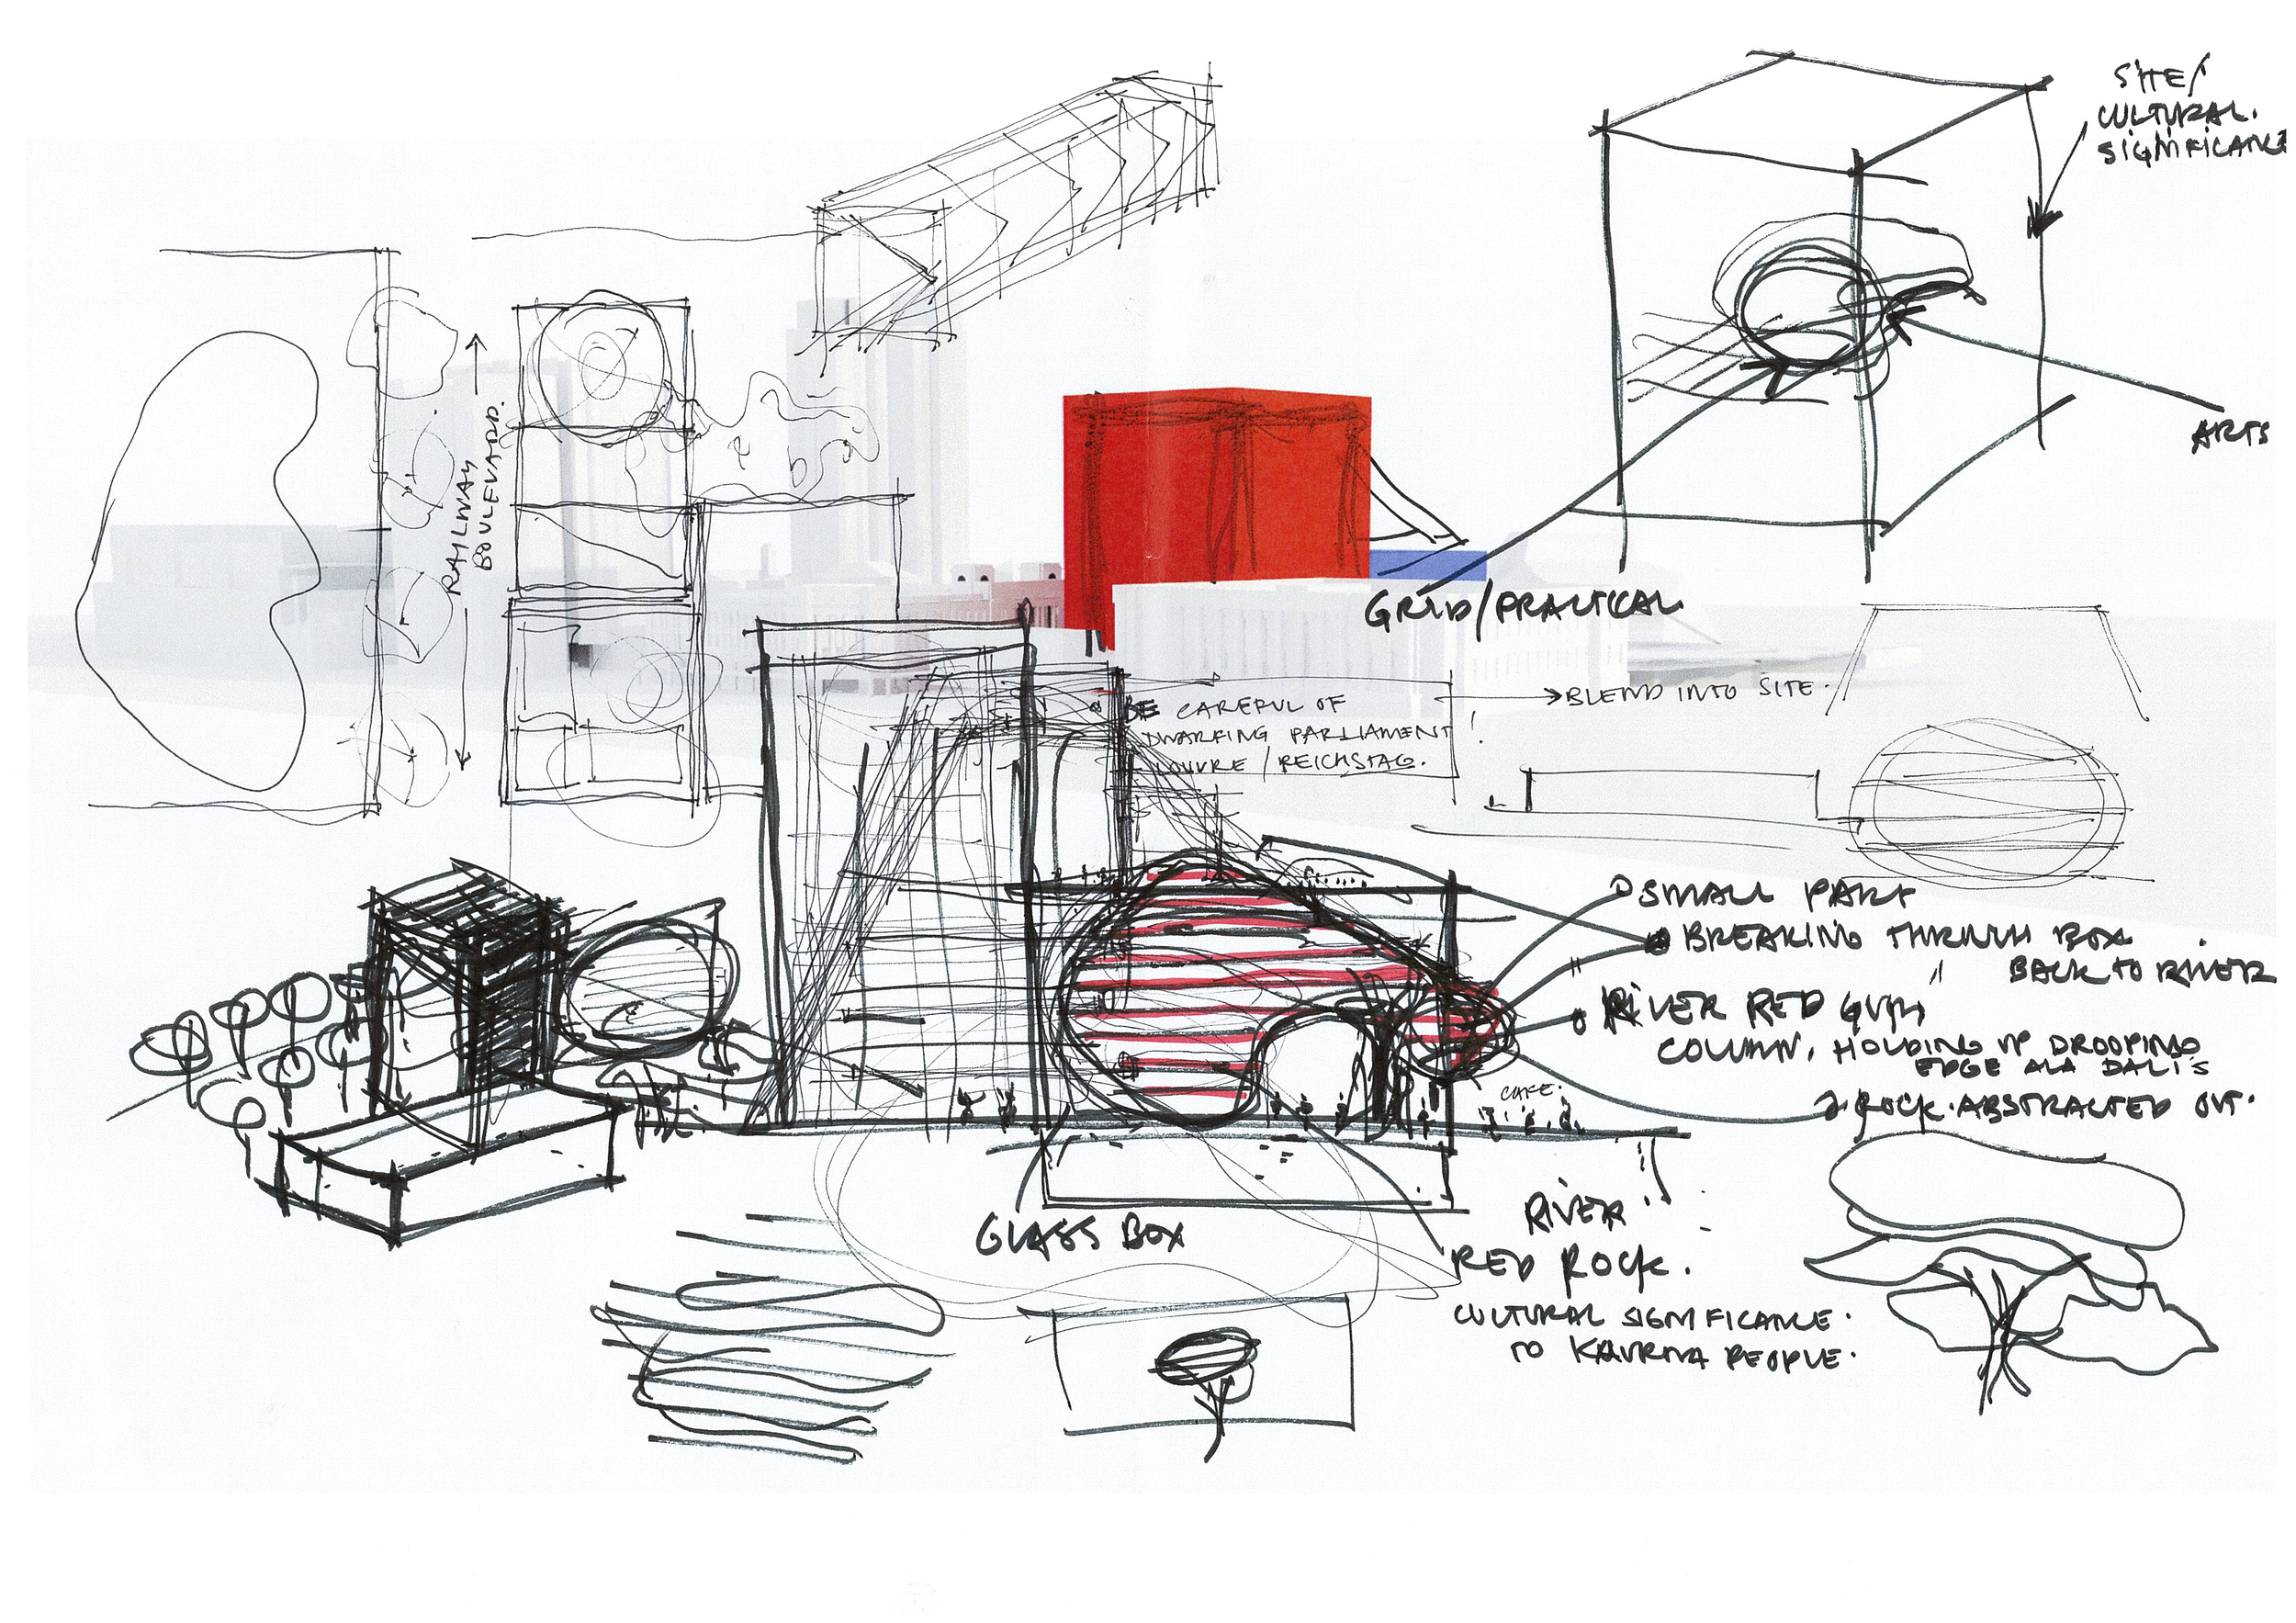 Initial sketch designs show the form generation take shape